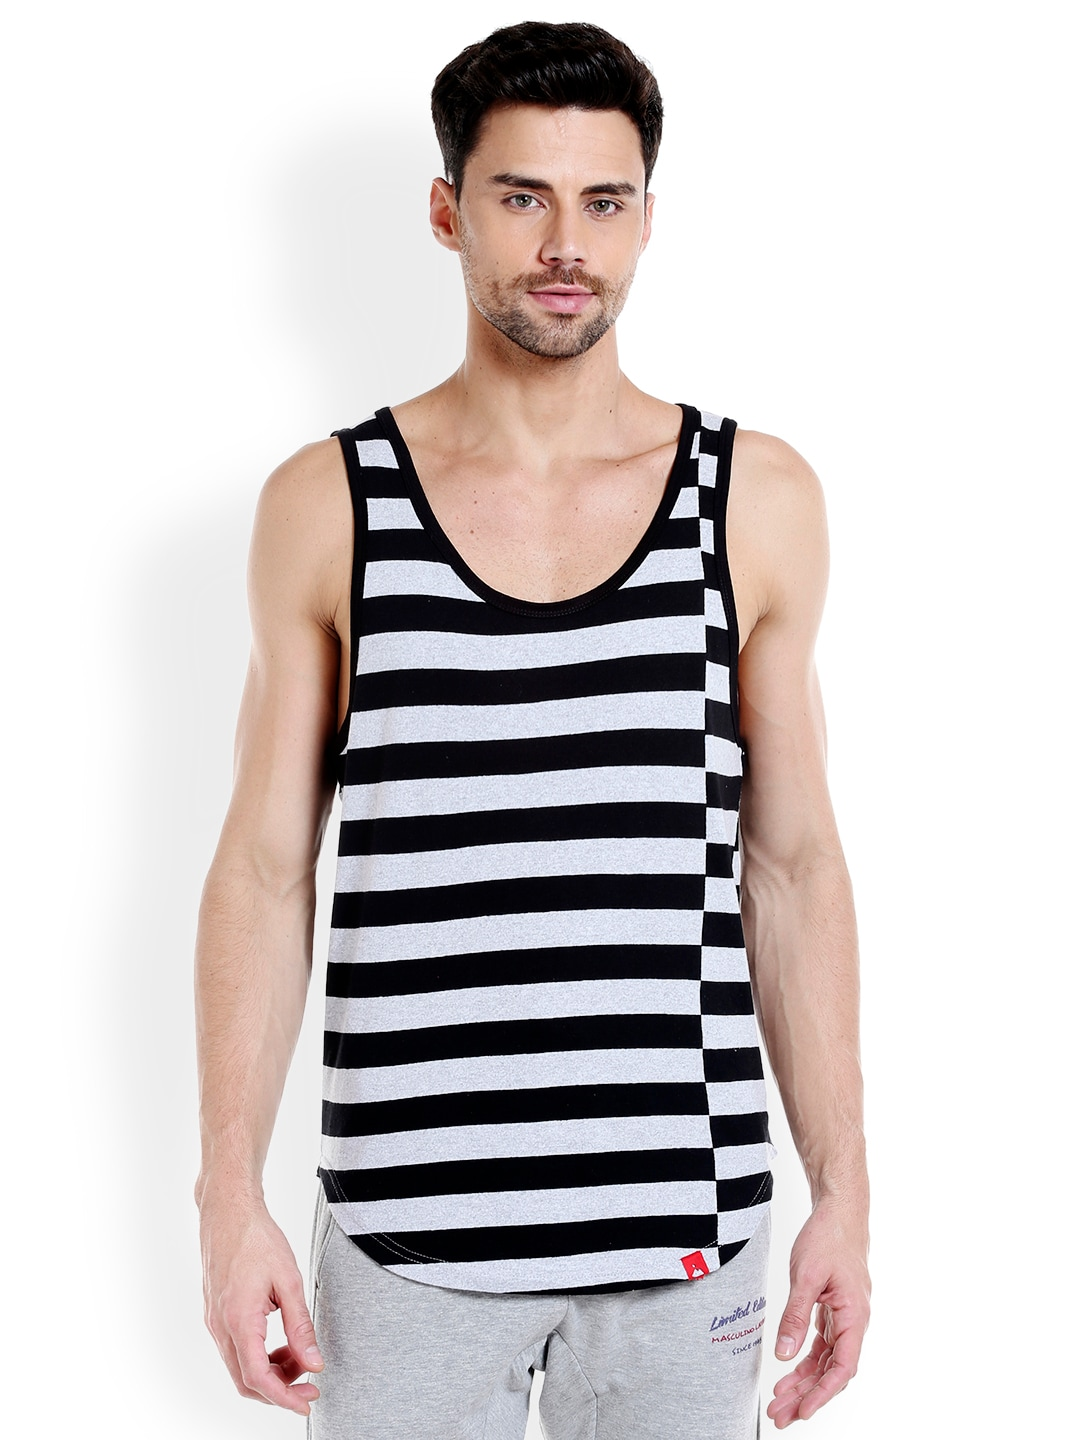 Masculino Latino Men Black & Grey Striped T-shirt MLF4030-D image